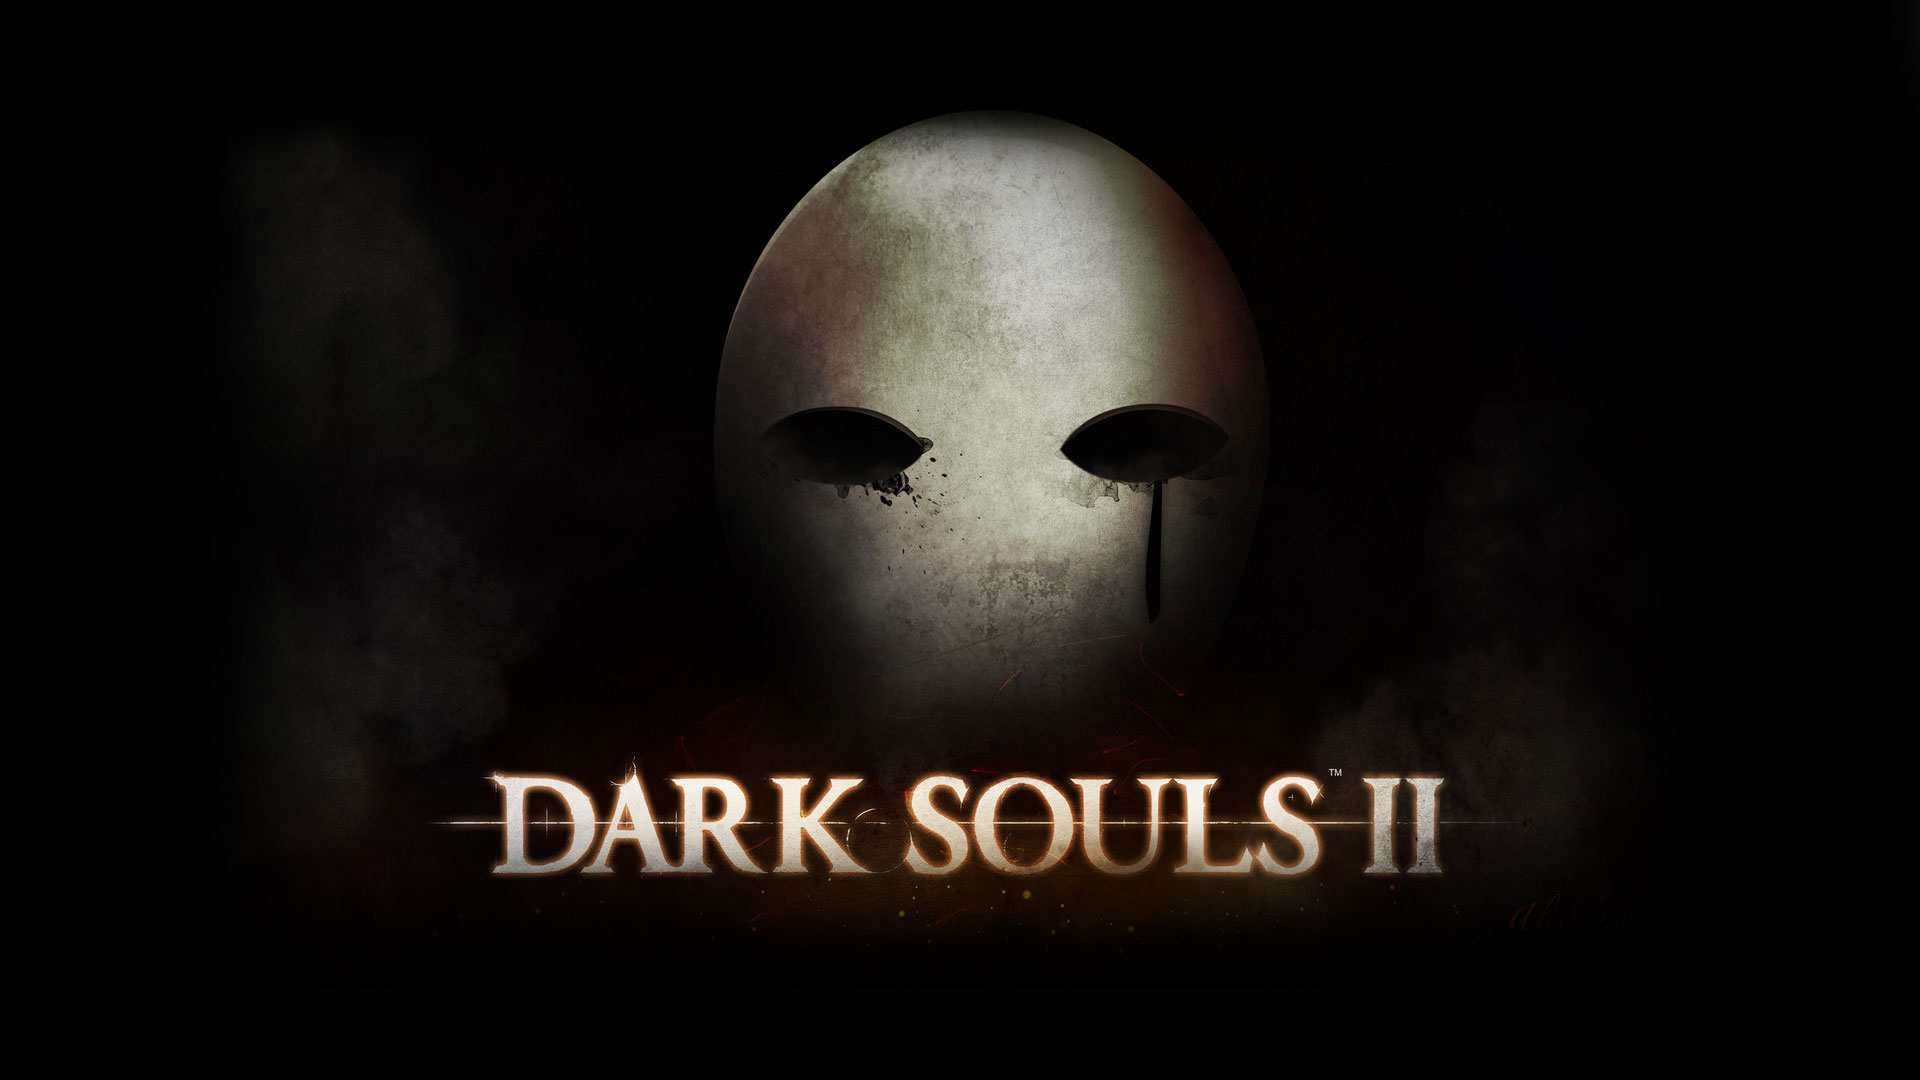 Dark Souls 2 Wallpapers HD Wallpapers Page 1 1920x1080